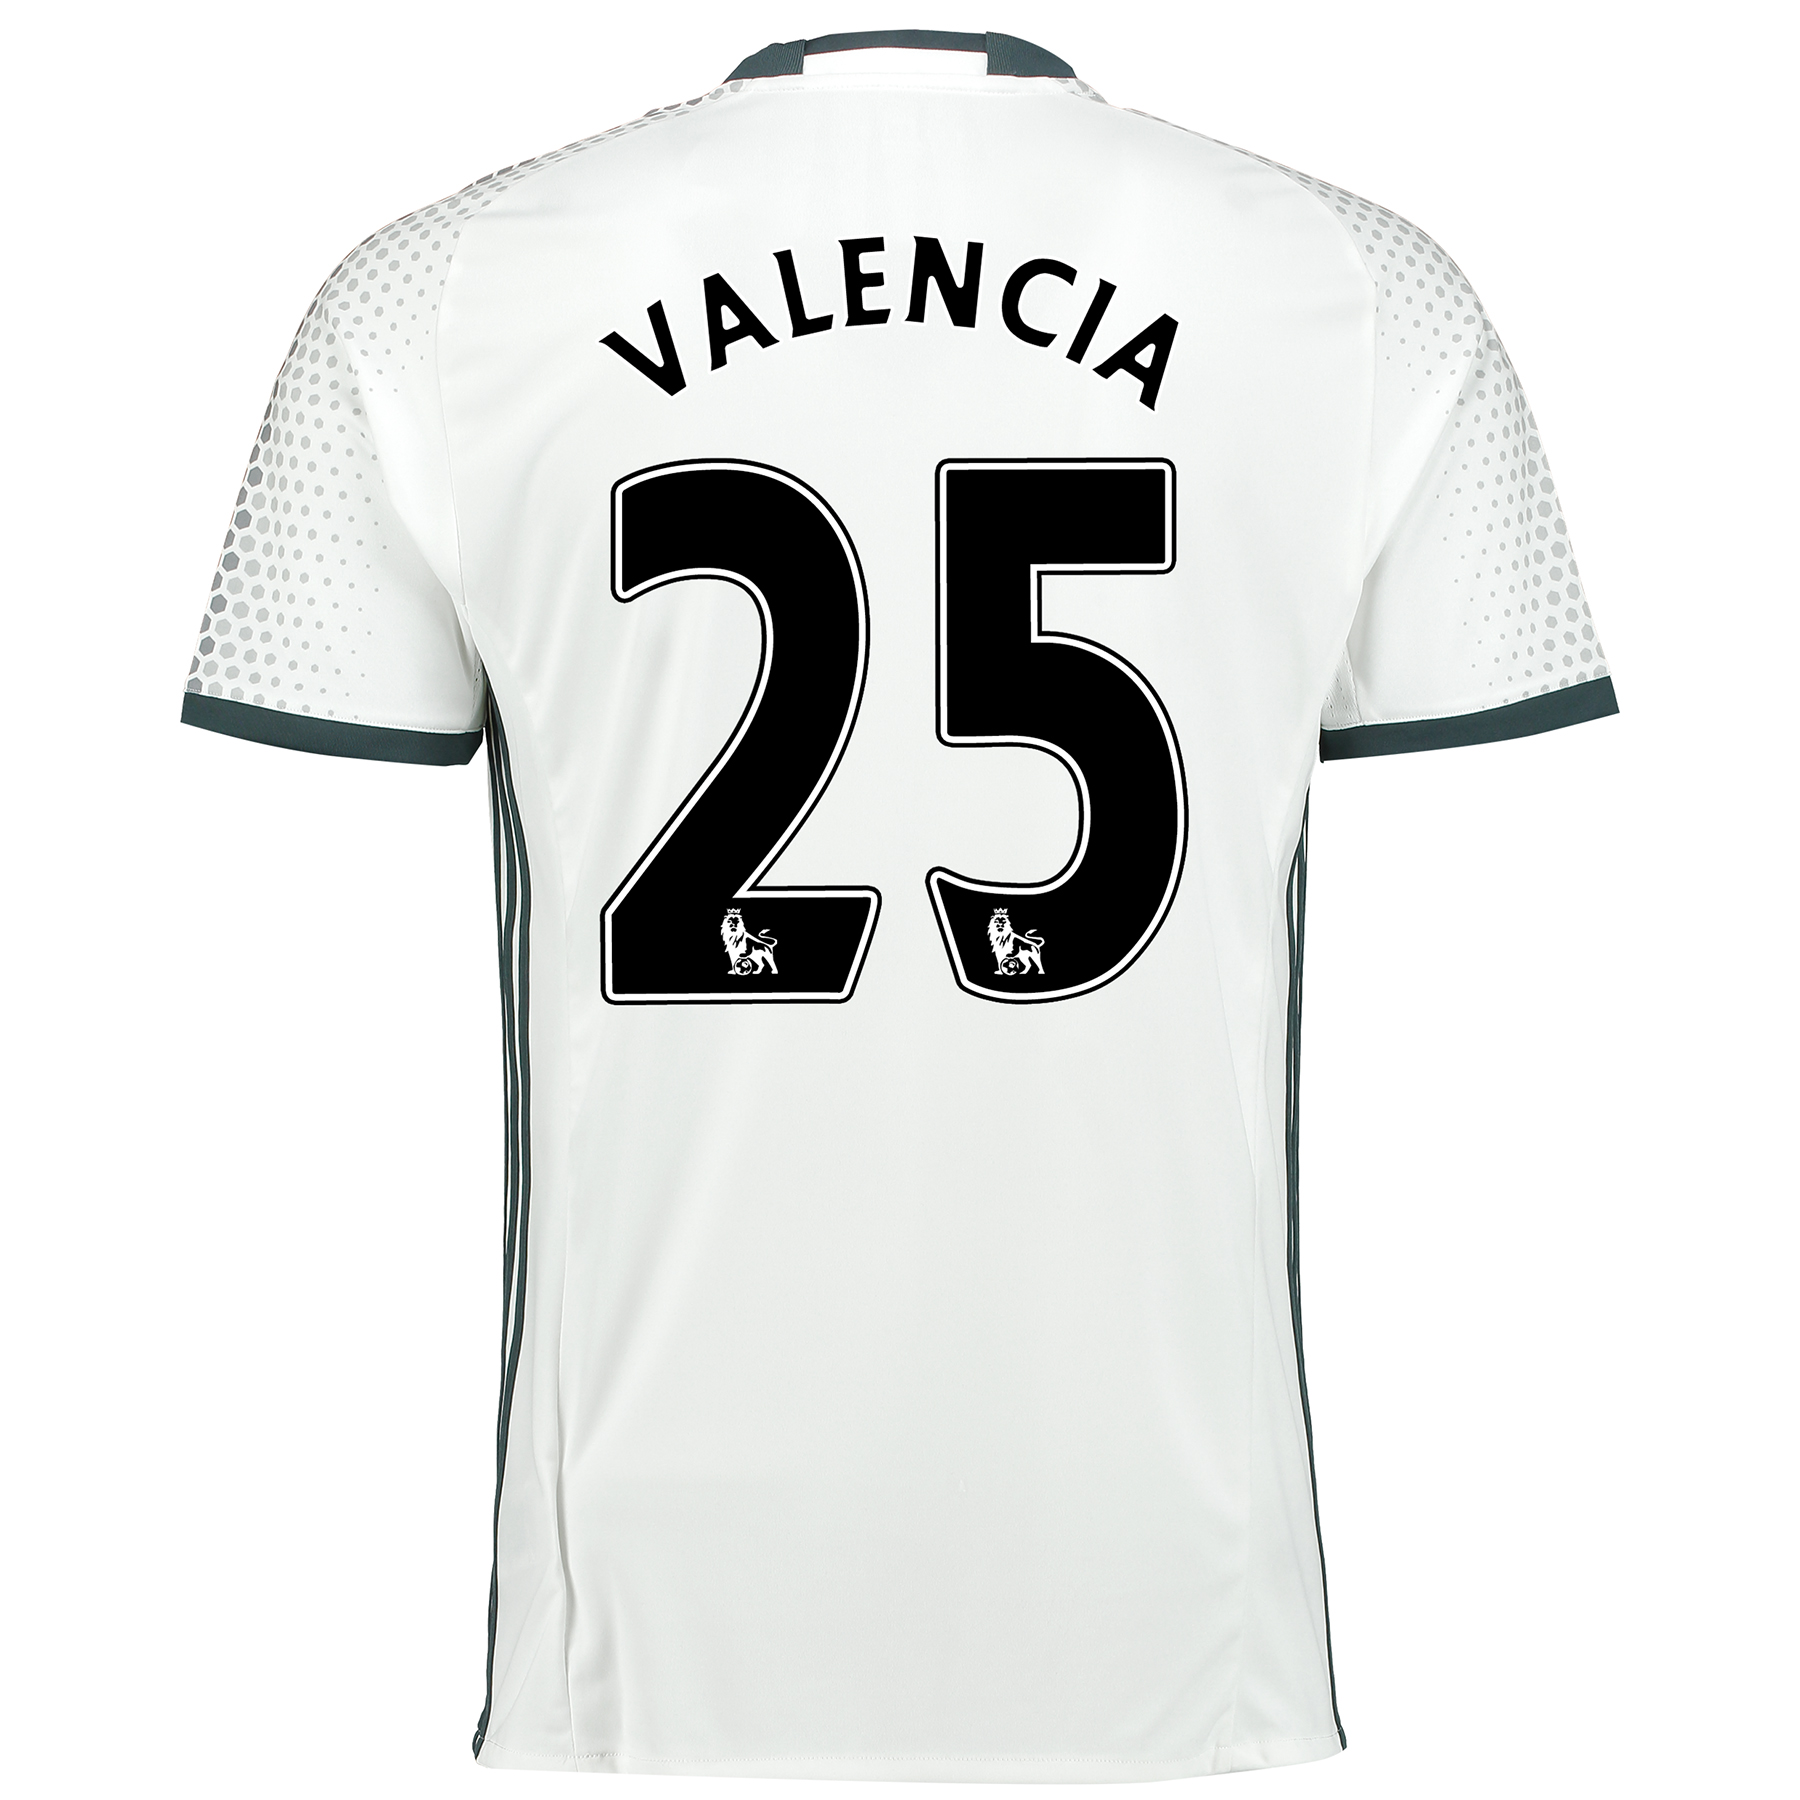 Manchester United Third Shirt 2016-17 with Valencia 25 printing